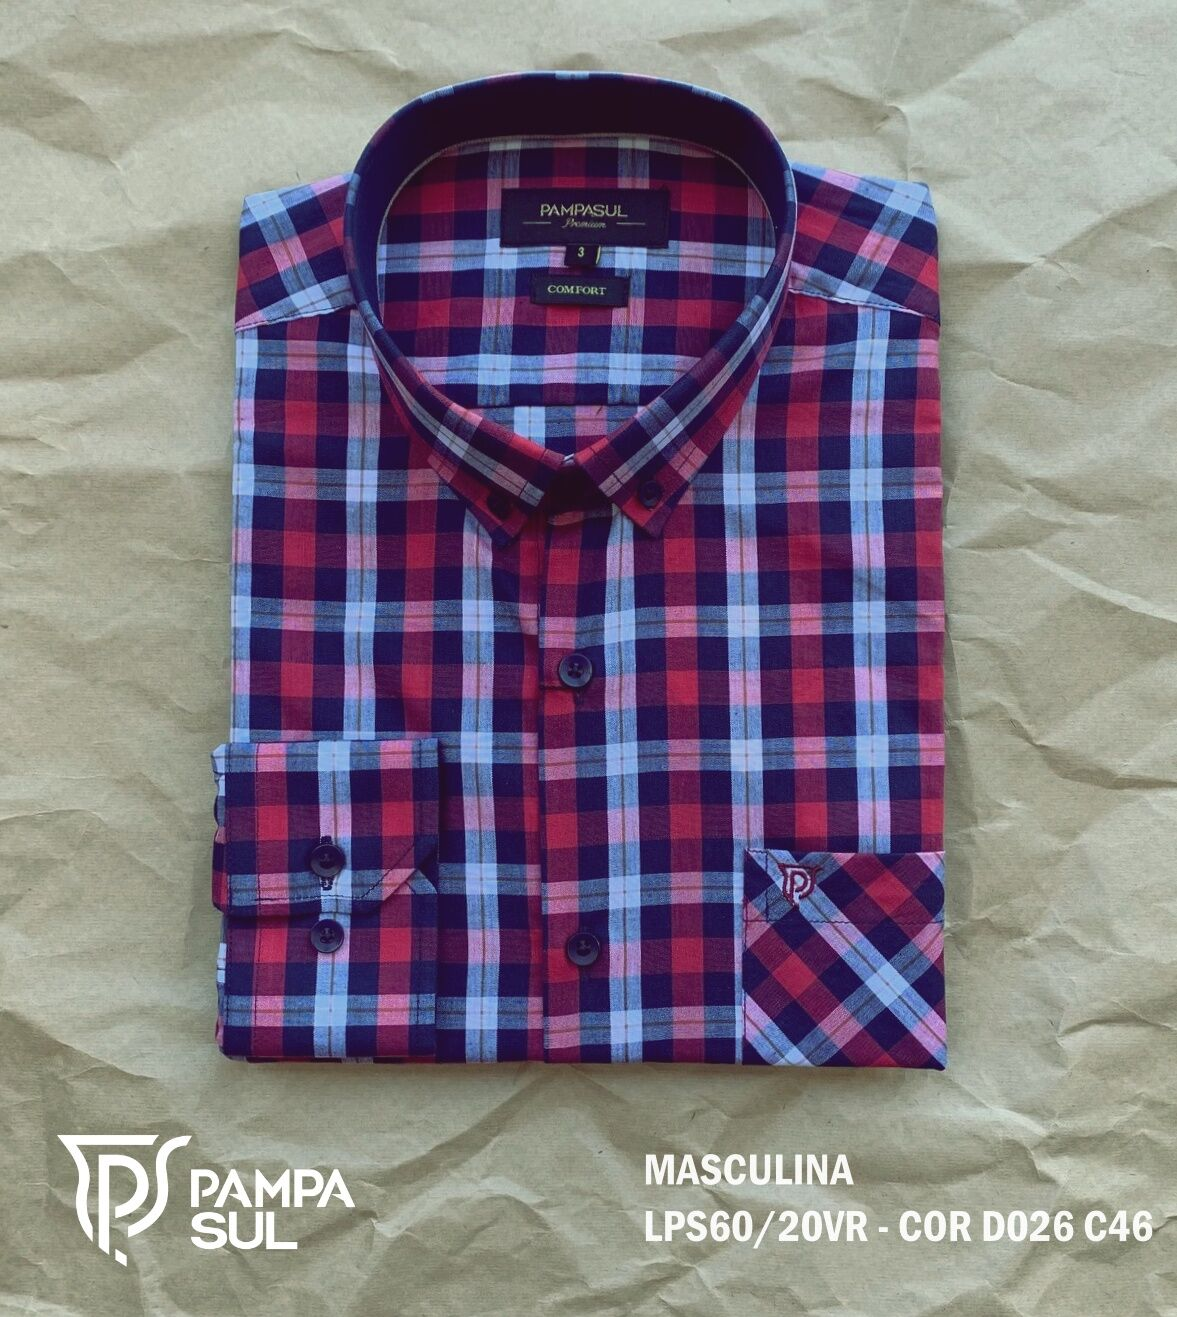 Camisa Pampa Sul Masculina Slim Confort LPS 60/20